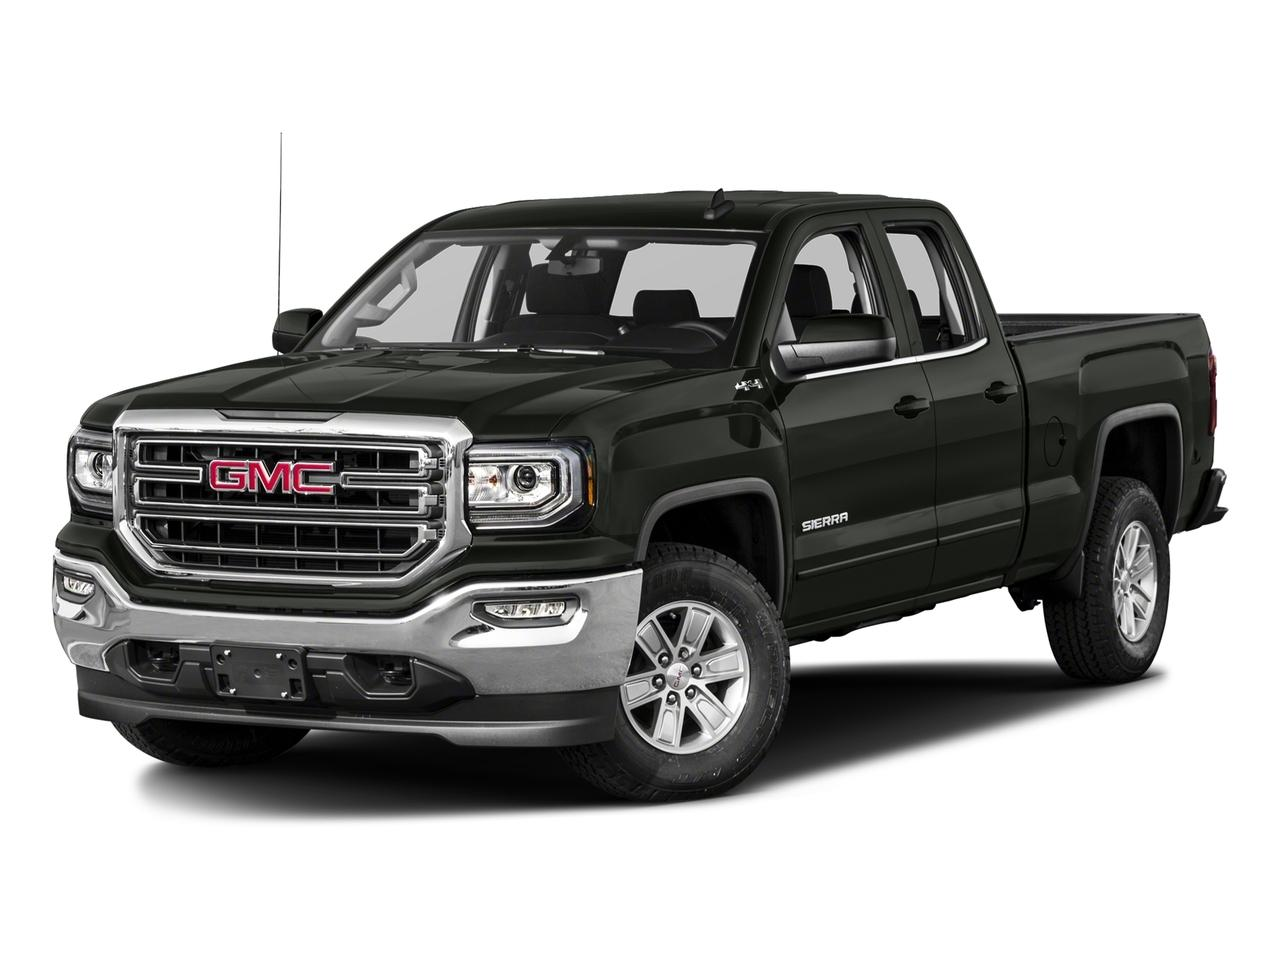 2018 GMC Sierra 1500 Vehicle Photo in West Chester, PA 19382